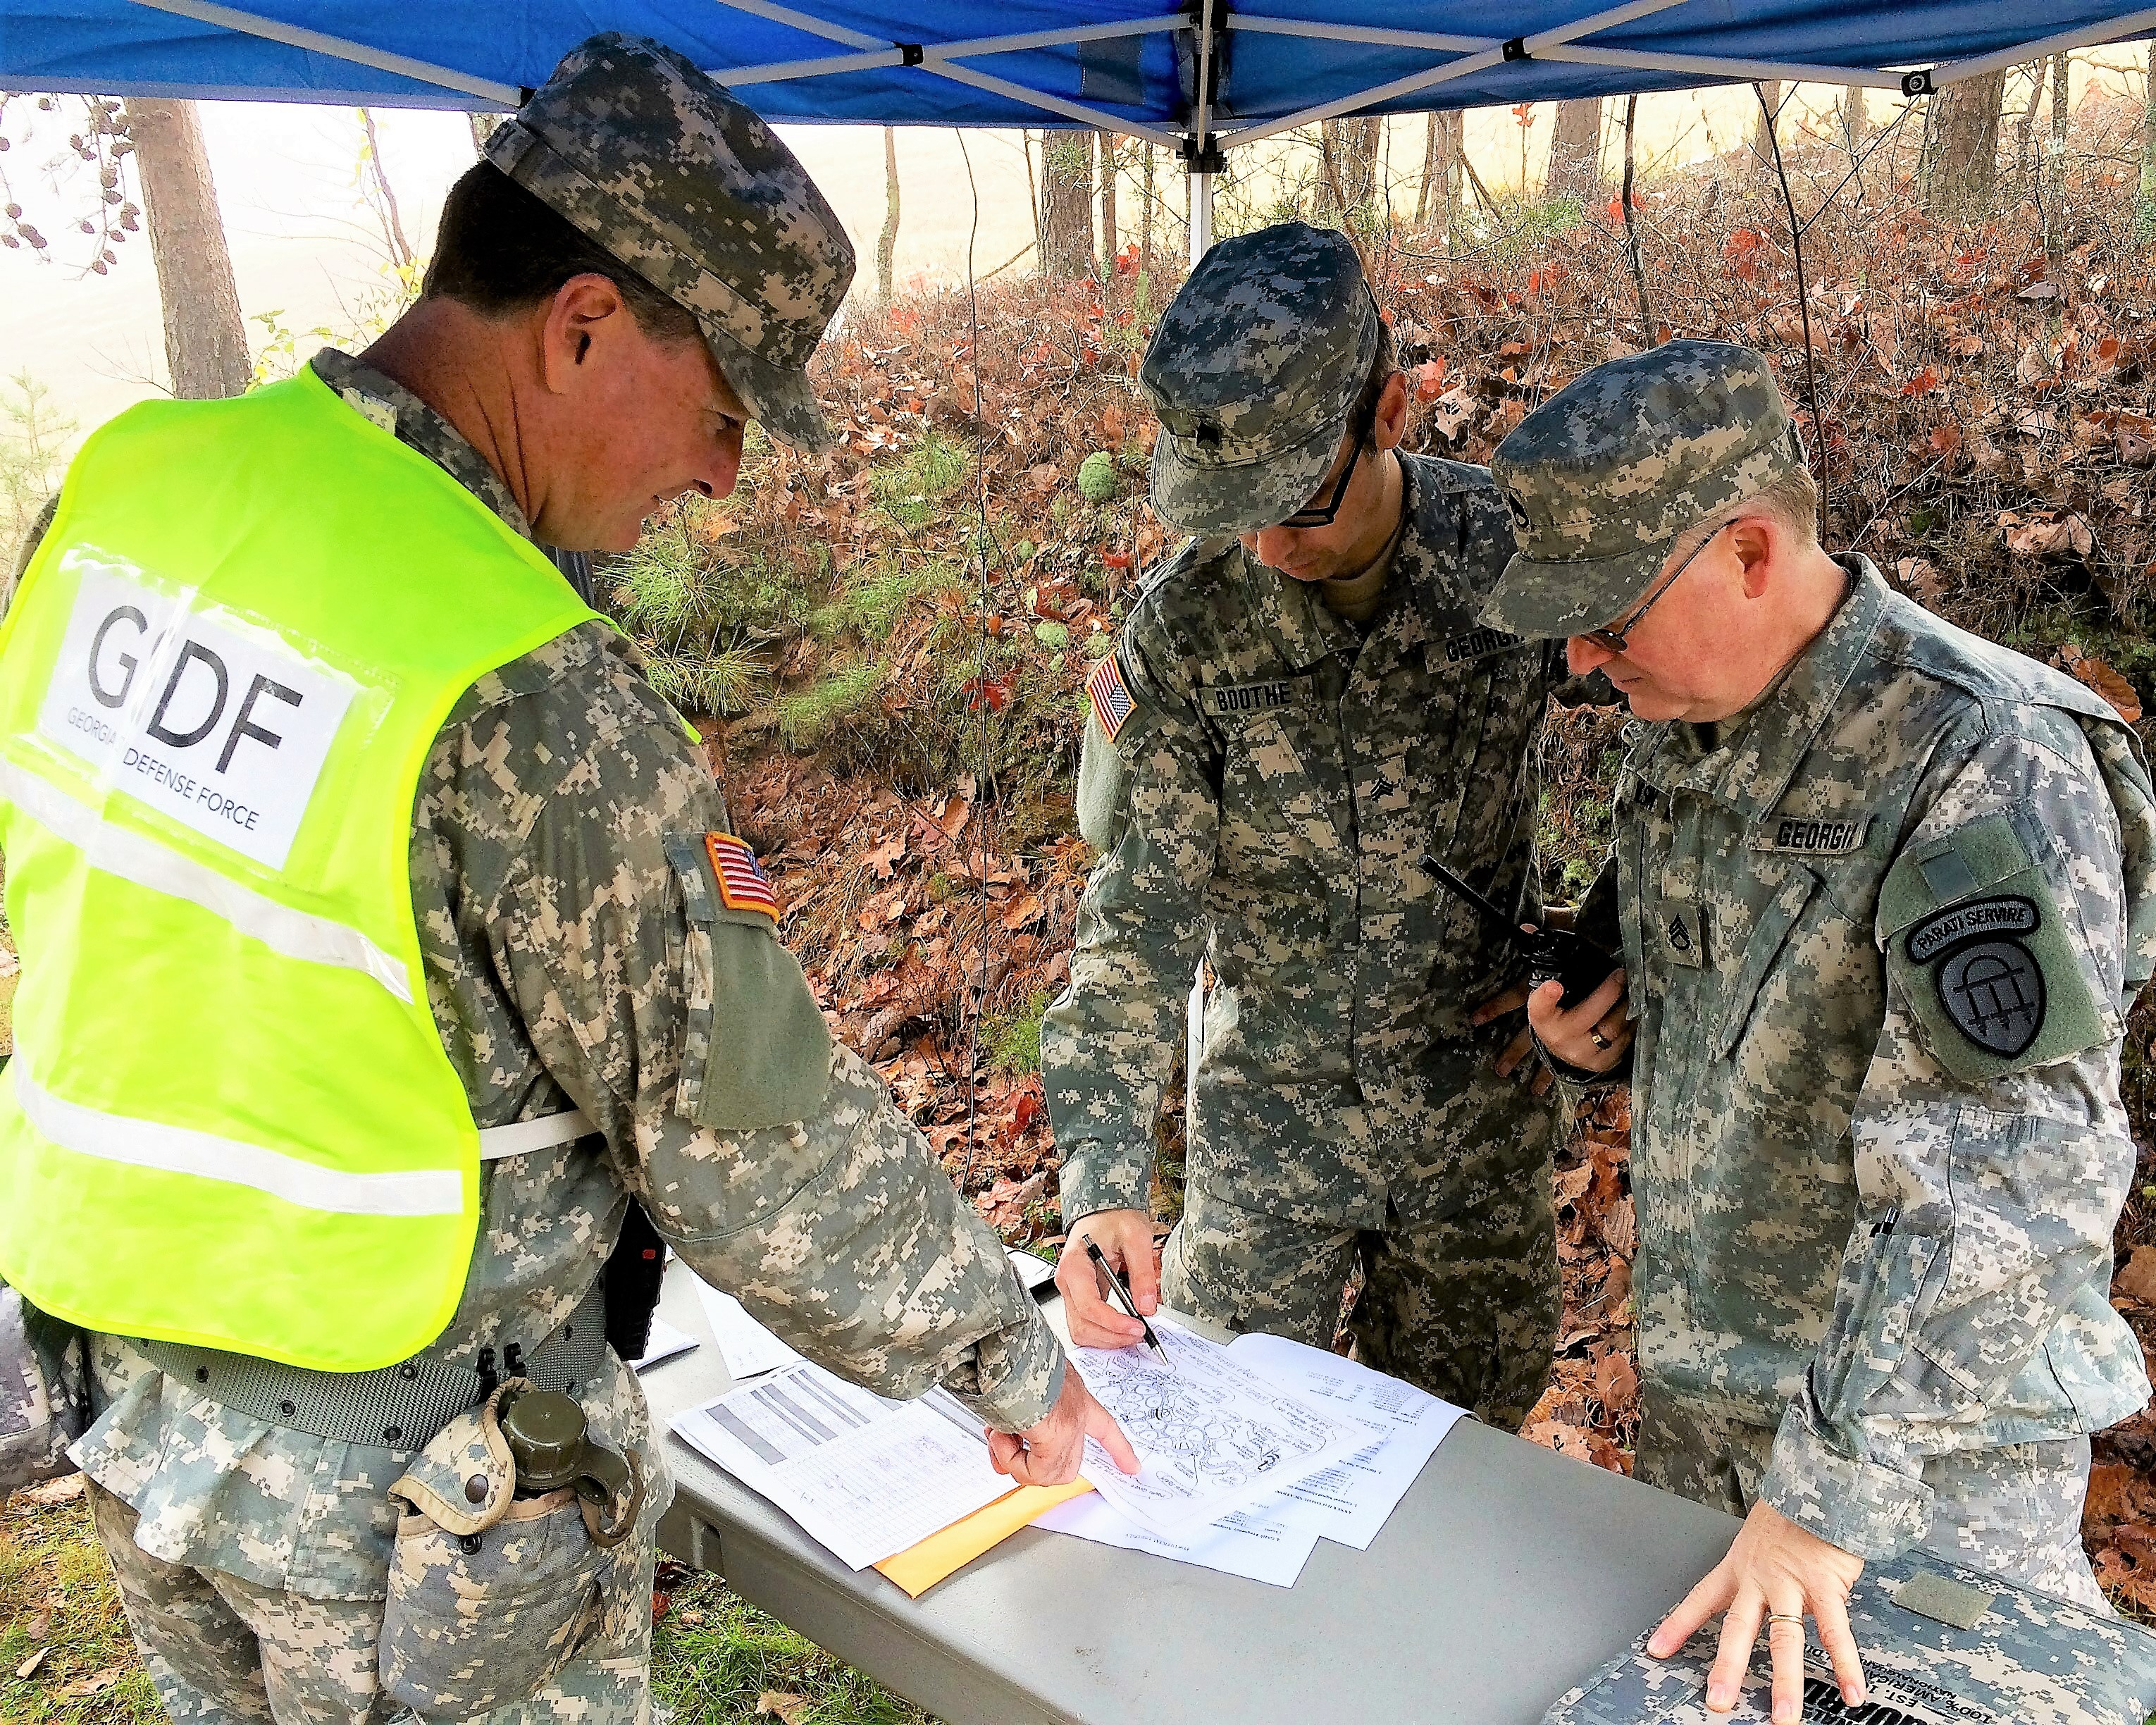 GEORGIA NATIONAL CEMETERY, Canton, Georgia, December 12, 2015 – Sgt. 1st Class Jim Dempsey (left) receives an update from Sgt. Matt Boothe (center) and Staff Sgt. Brian Wilson (right) on the status of traffic control operations during the National Wreaths Across America event. (Georgia State Defense Force photo by Pvt. Michael Chapman, Public Affairs Office)